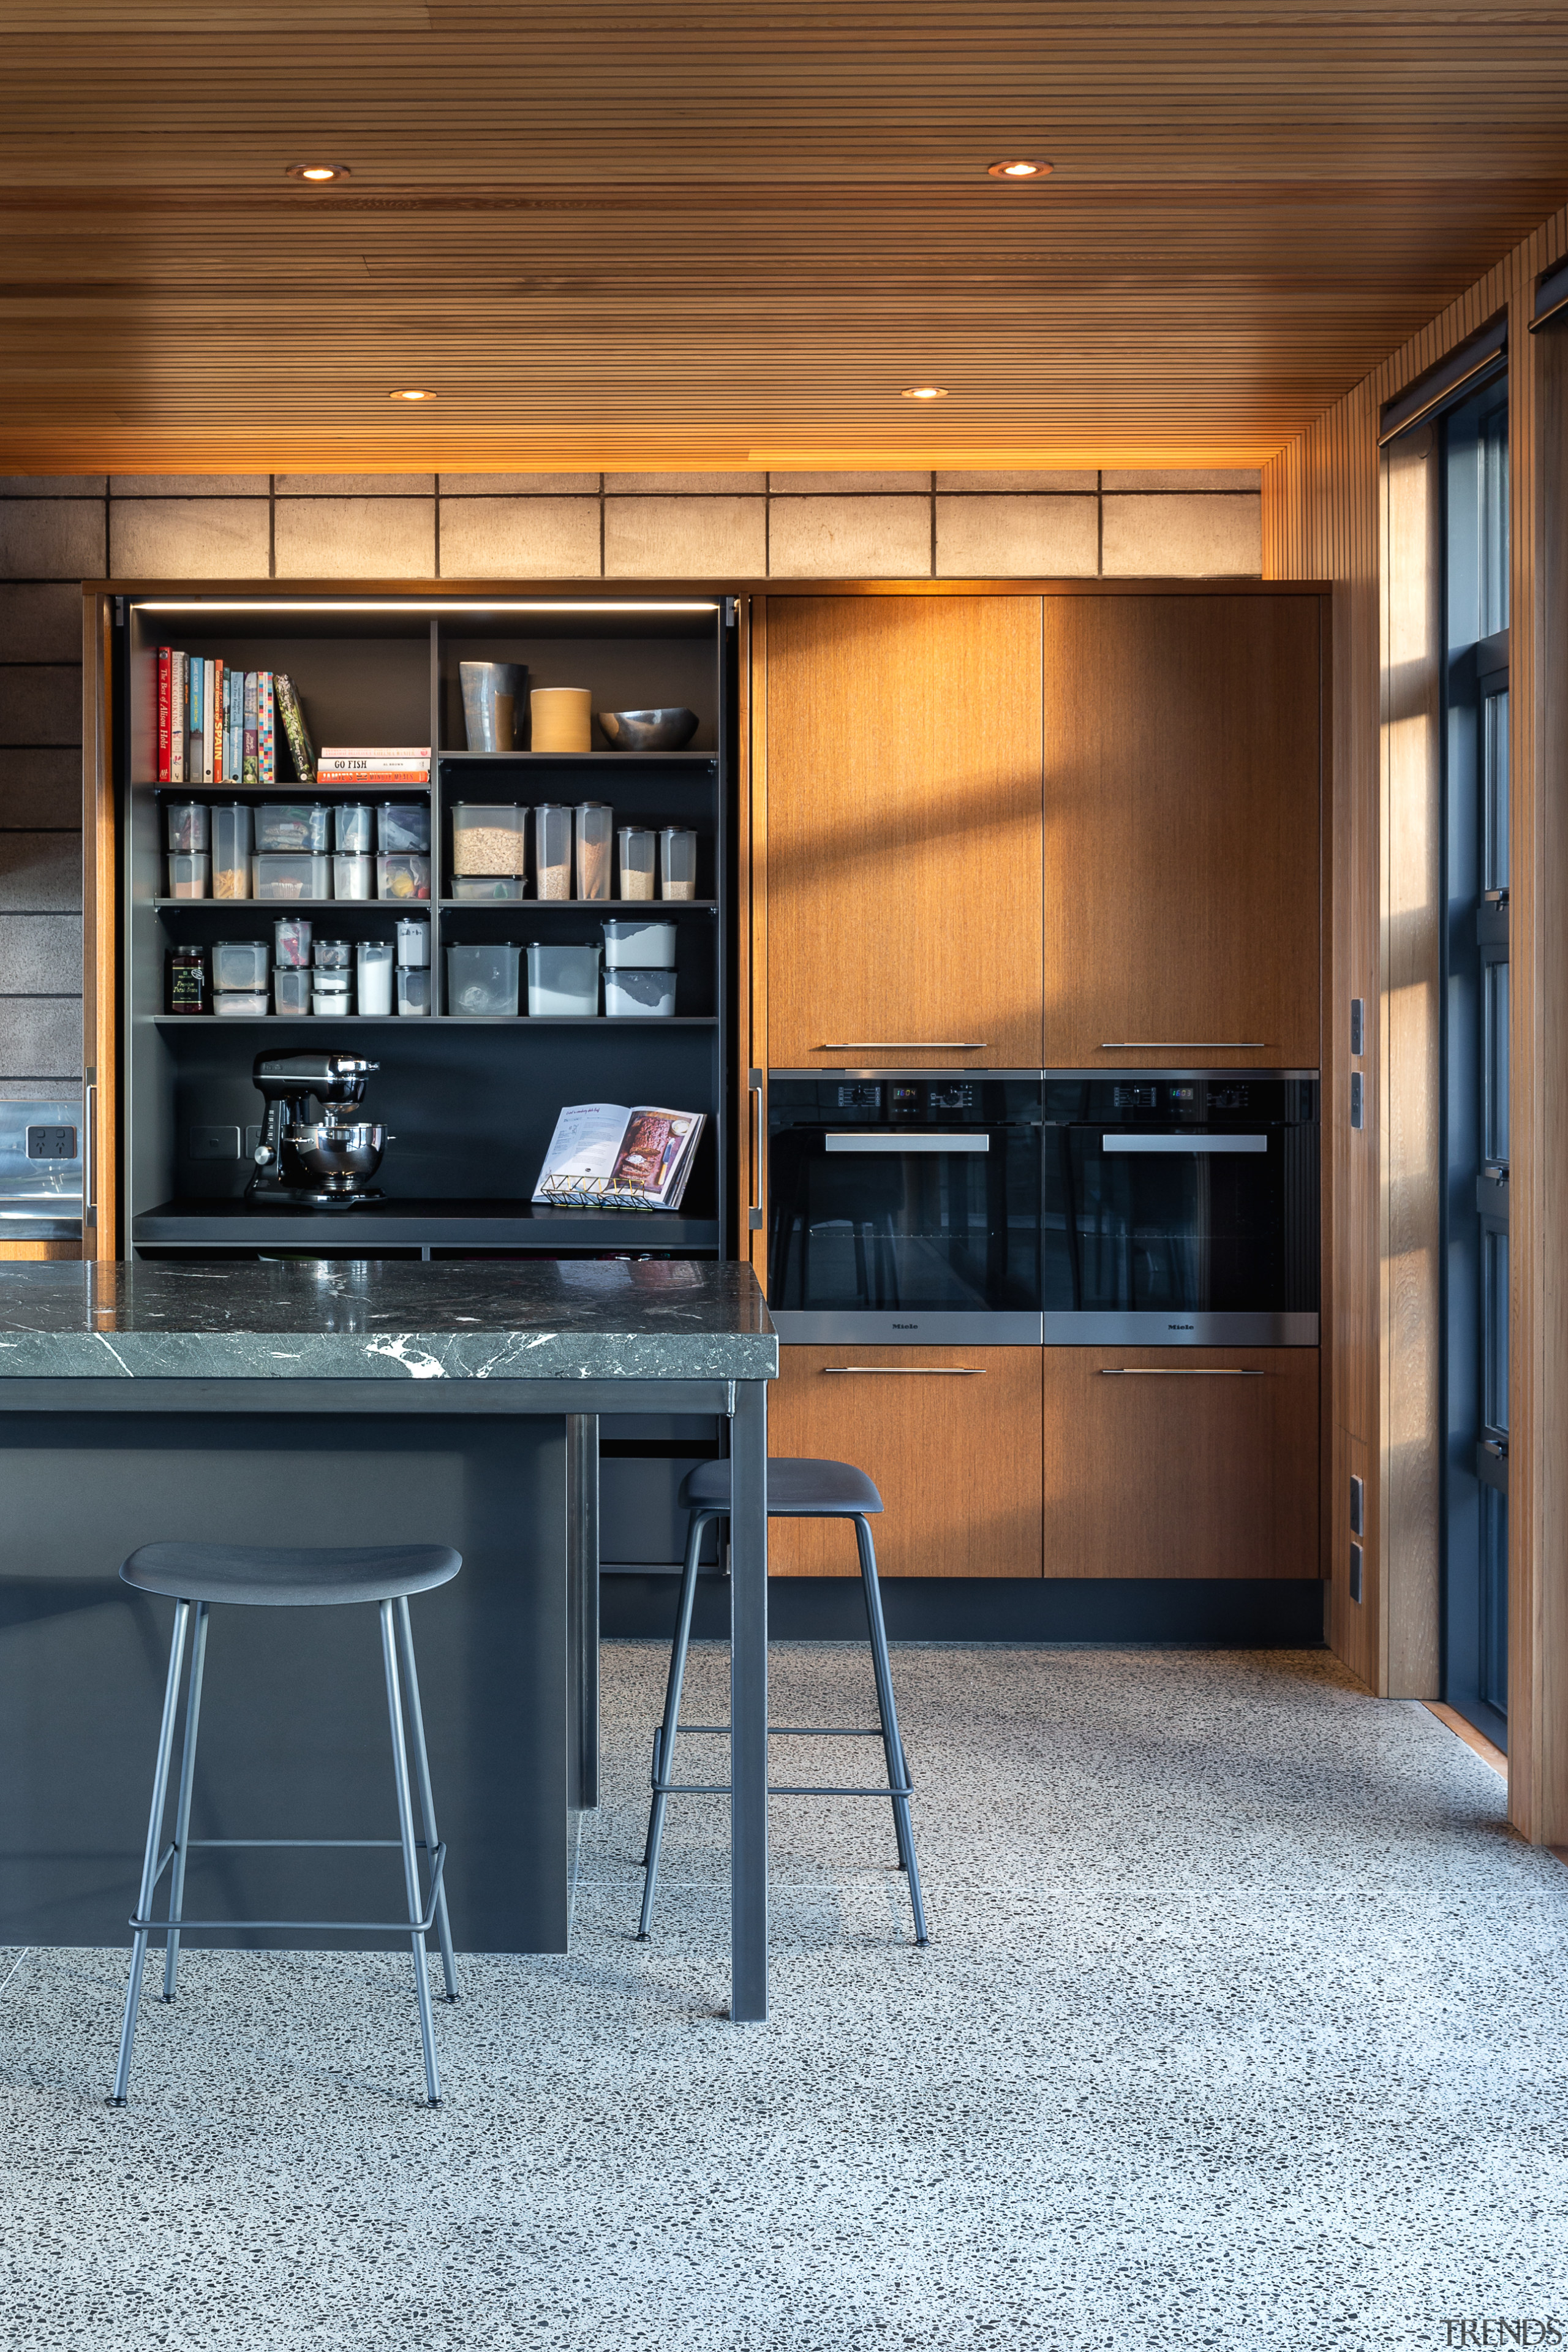 When your passion is baking it makes sense architecture, building, cabinetry, ceiling, countertop, cupboard, floor, flooring, furniture, home, house, interior design, kitchen, plywood, property, room, shelf, shelving, table, wood, brown